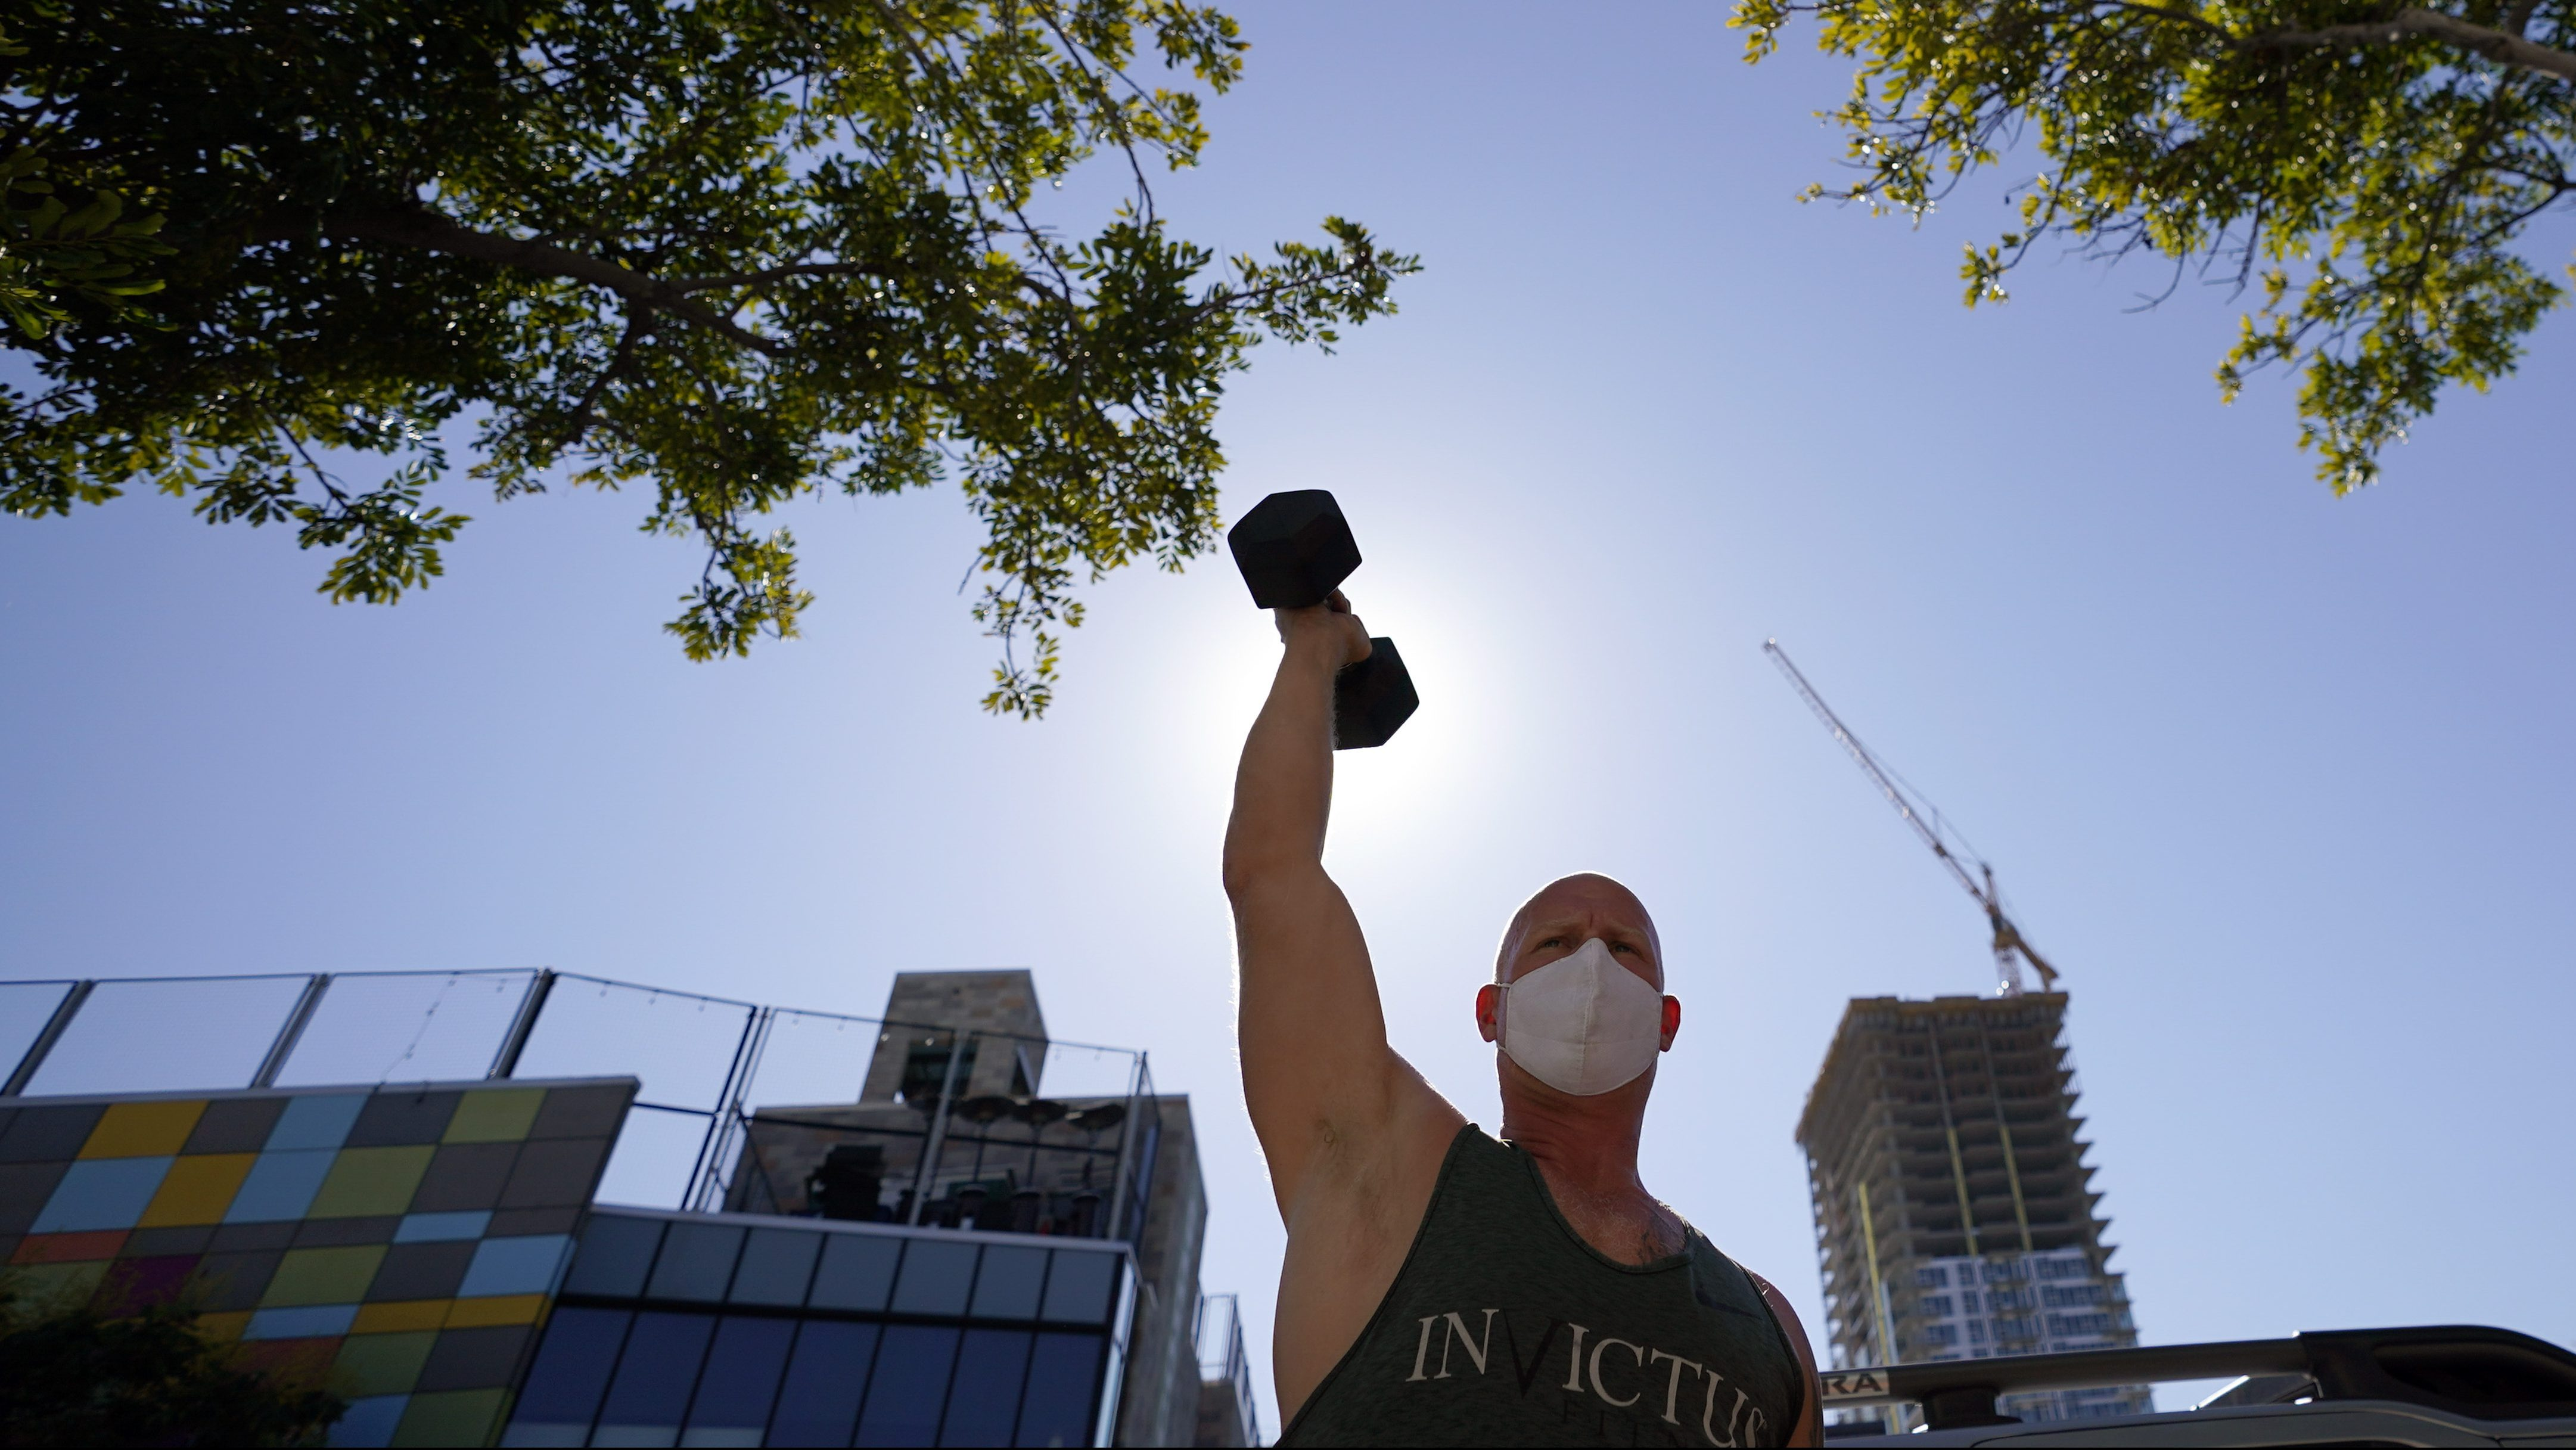 A man lifts weights outdoors